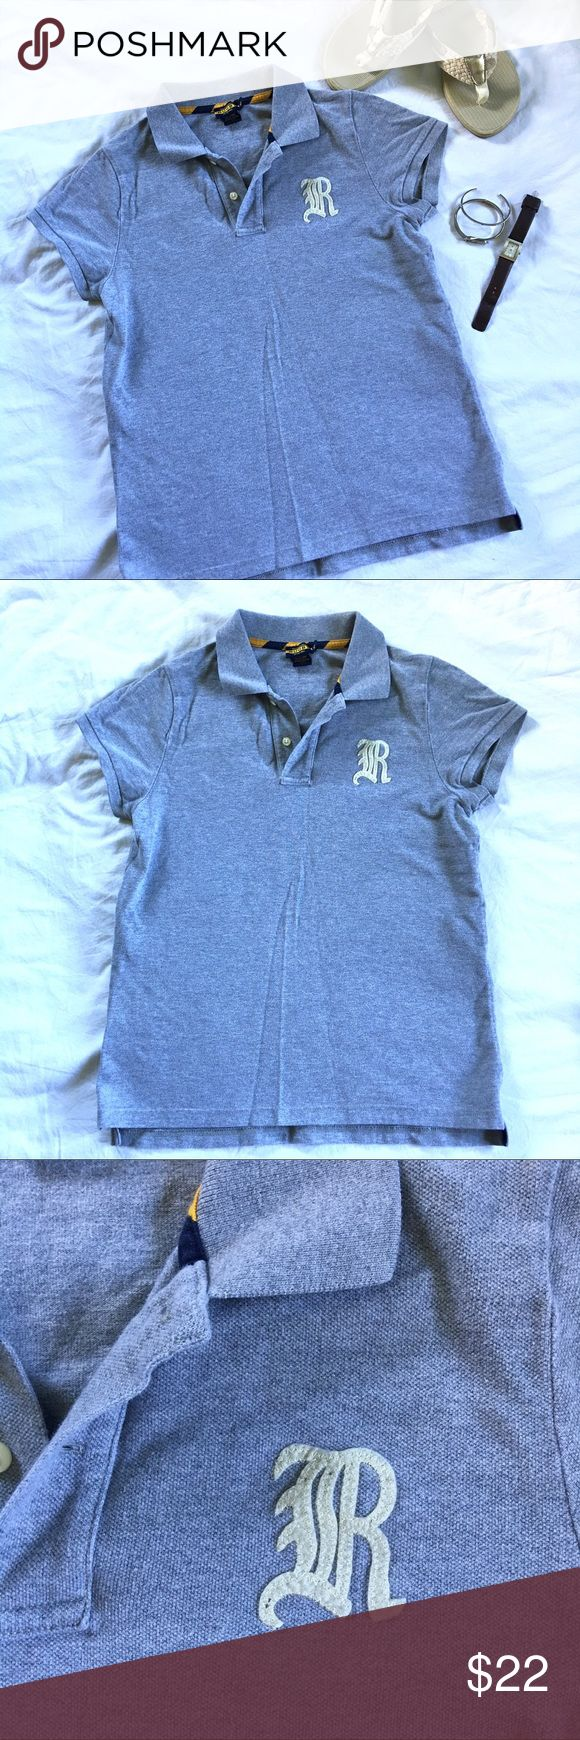 Polo by Ralph Lauren Gray Rugby Logo Polo • XL Polo by Ralph Lauren Gray Rugby Logo Polo • XL. This is a women's size XL and it does run on the small side (it fits more like a Large). Only worn a few times. Perfect for an easy breezy summer party outfit! Polo by Ralph Lauren Tops Tees - Short Sleeve